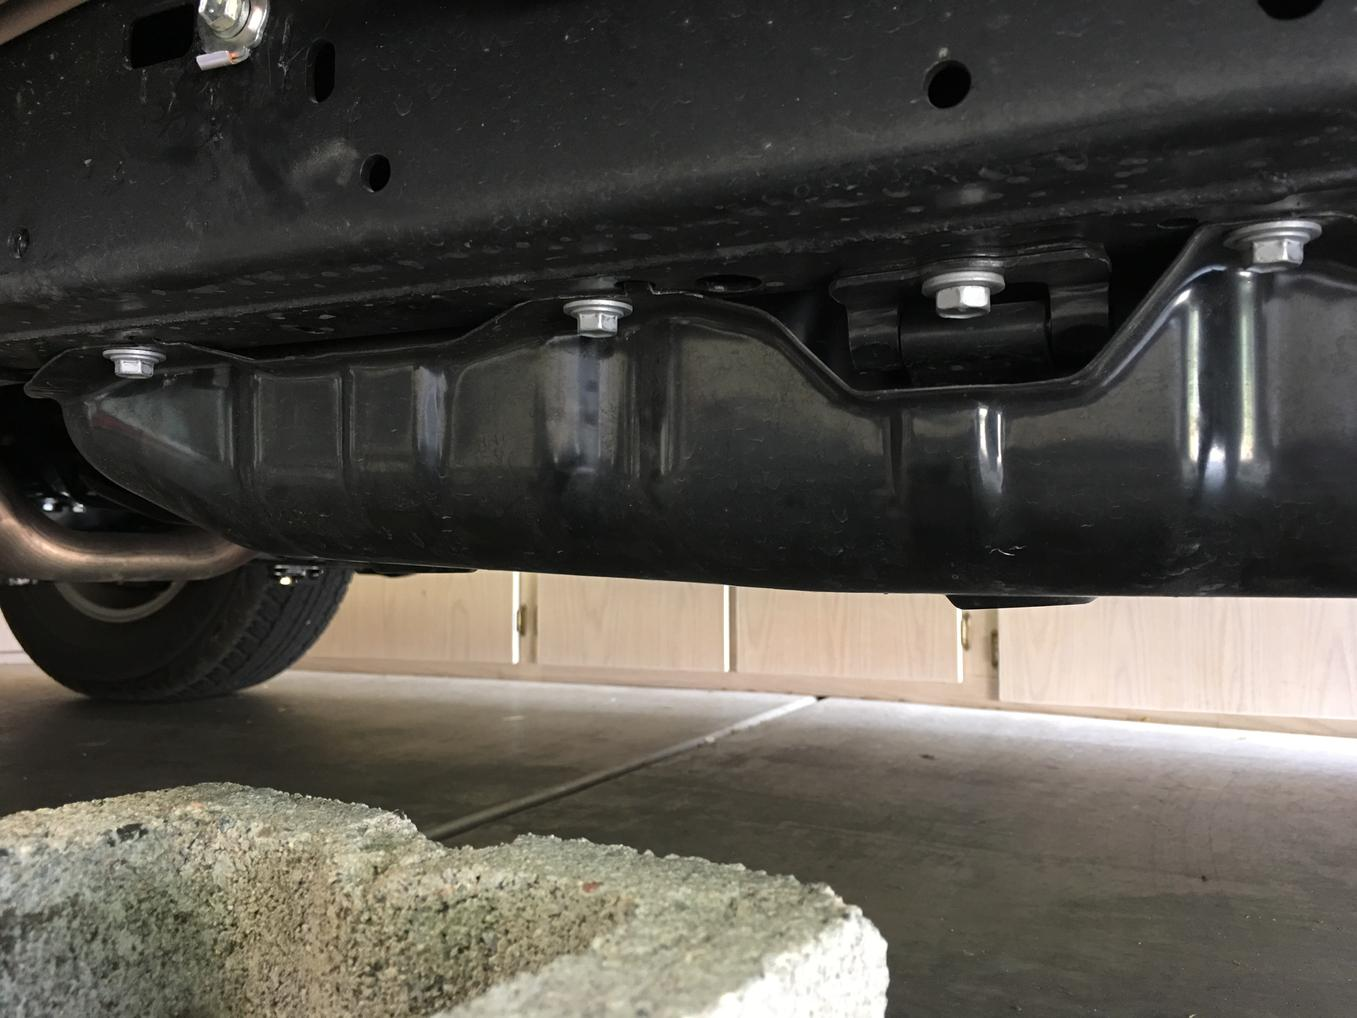 How to: Install Rock Sliders with KDSS-4_img_0763-jpg